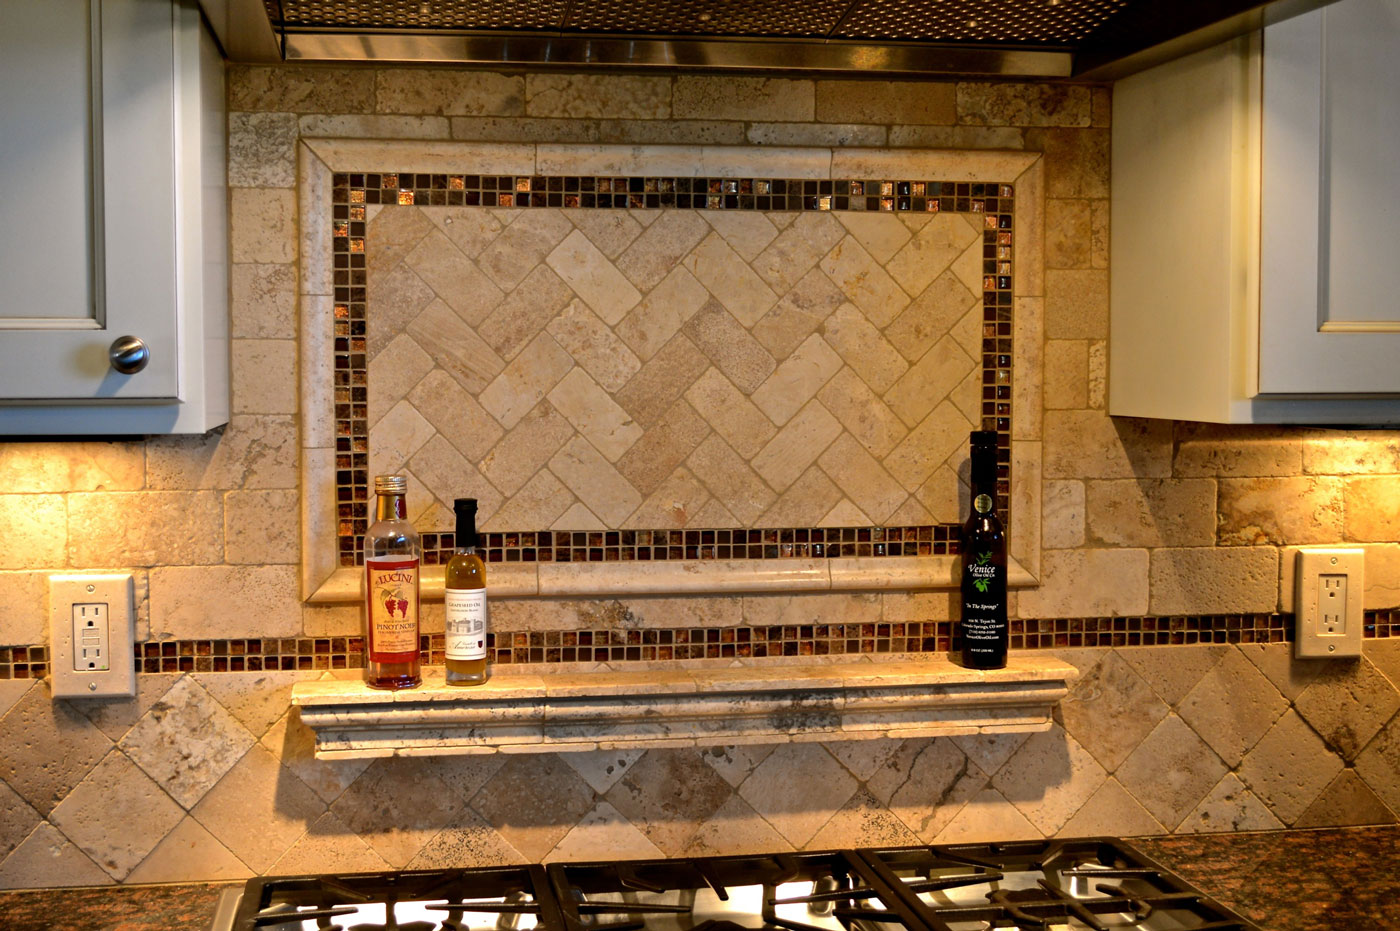 Interior design own home - Colorado Springs Interior Design Custom Backsplasjh Tile Kitchen Jpg